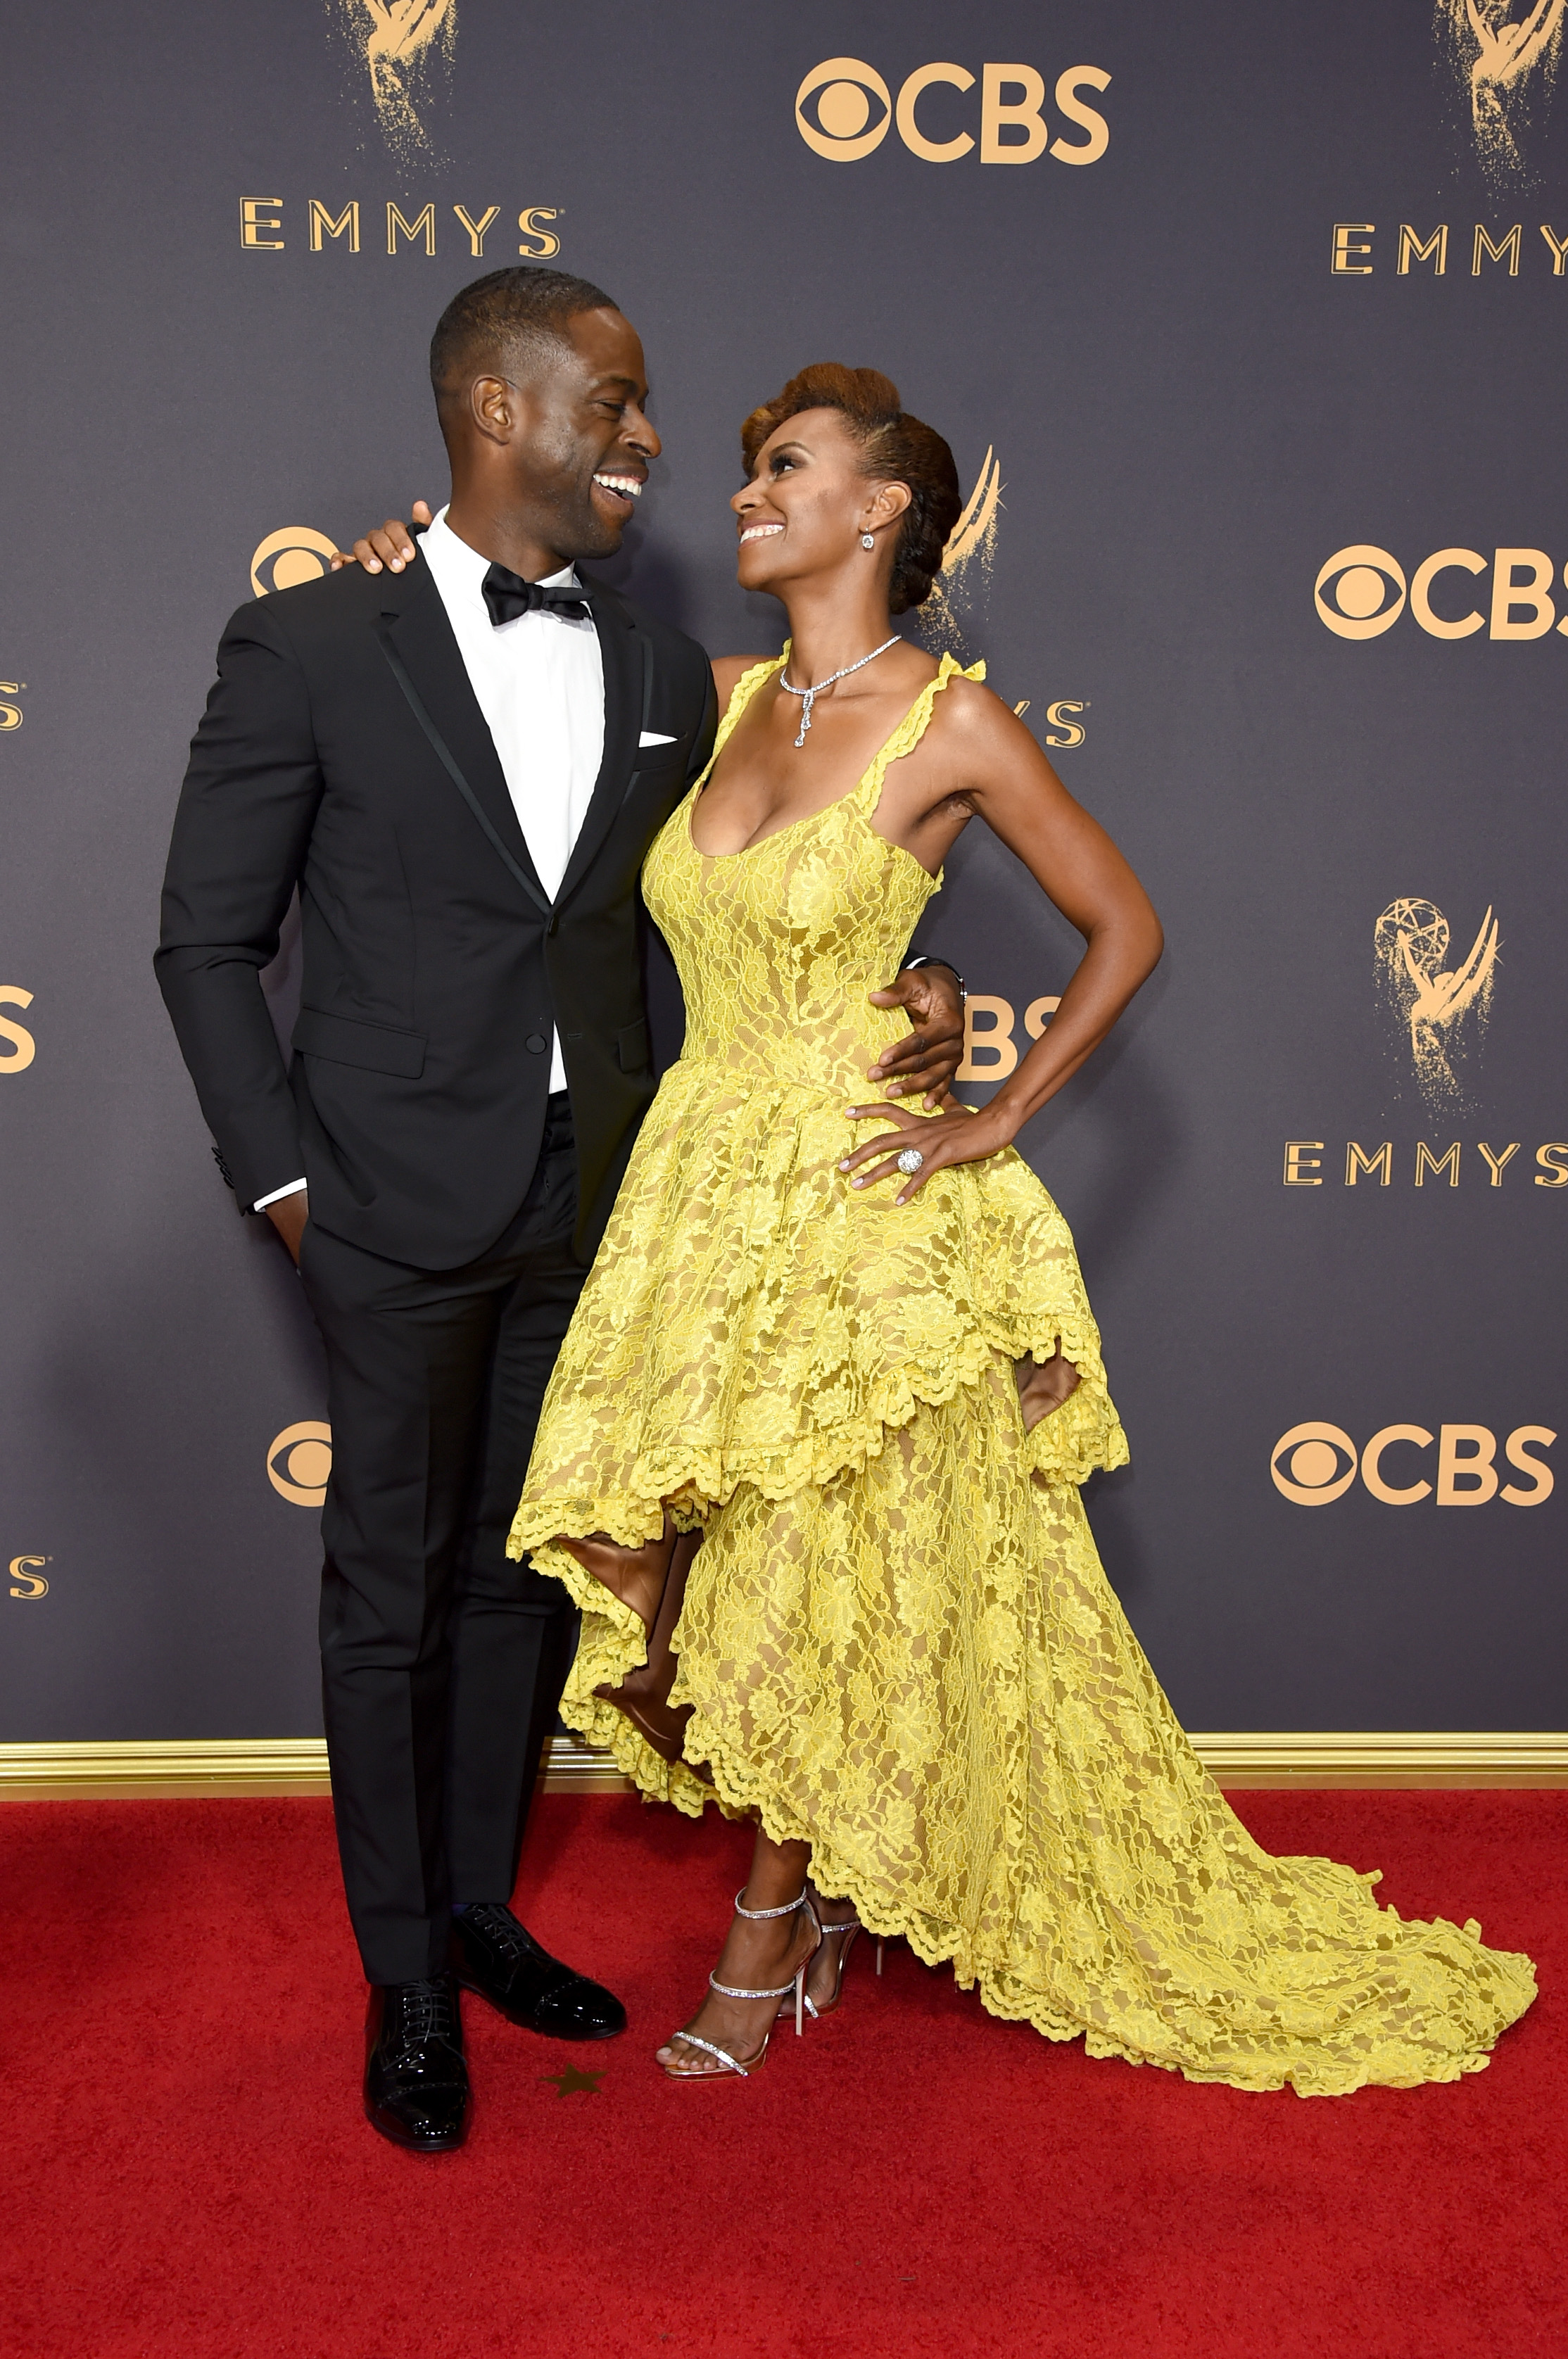 Sterling K. Brown and Ryan Michelle Bathe attend the 69th Annual Primetime Emmy Awards at Microsoft Theater on Sept. 17, 2017 in Los Angeles.